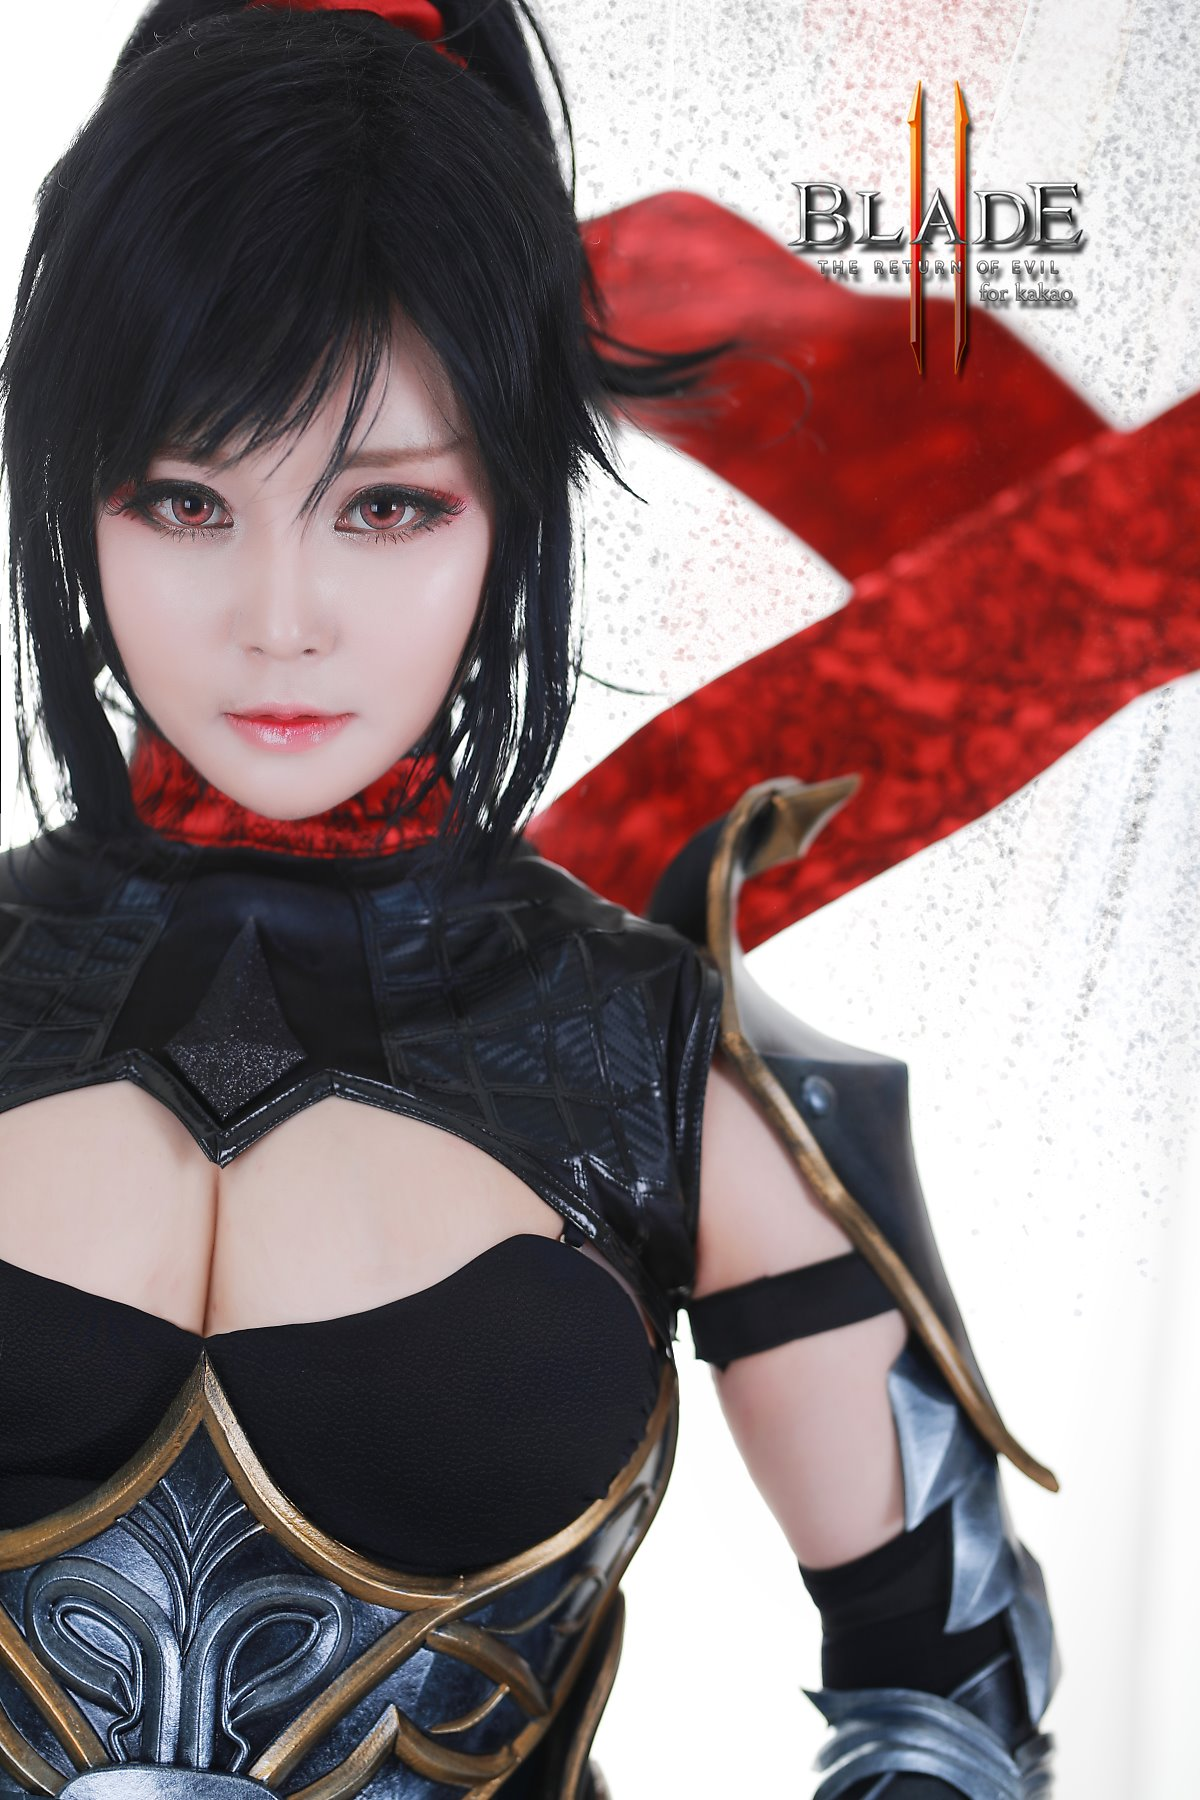 Blade 2 Assassin cosplay